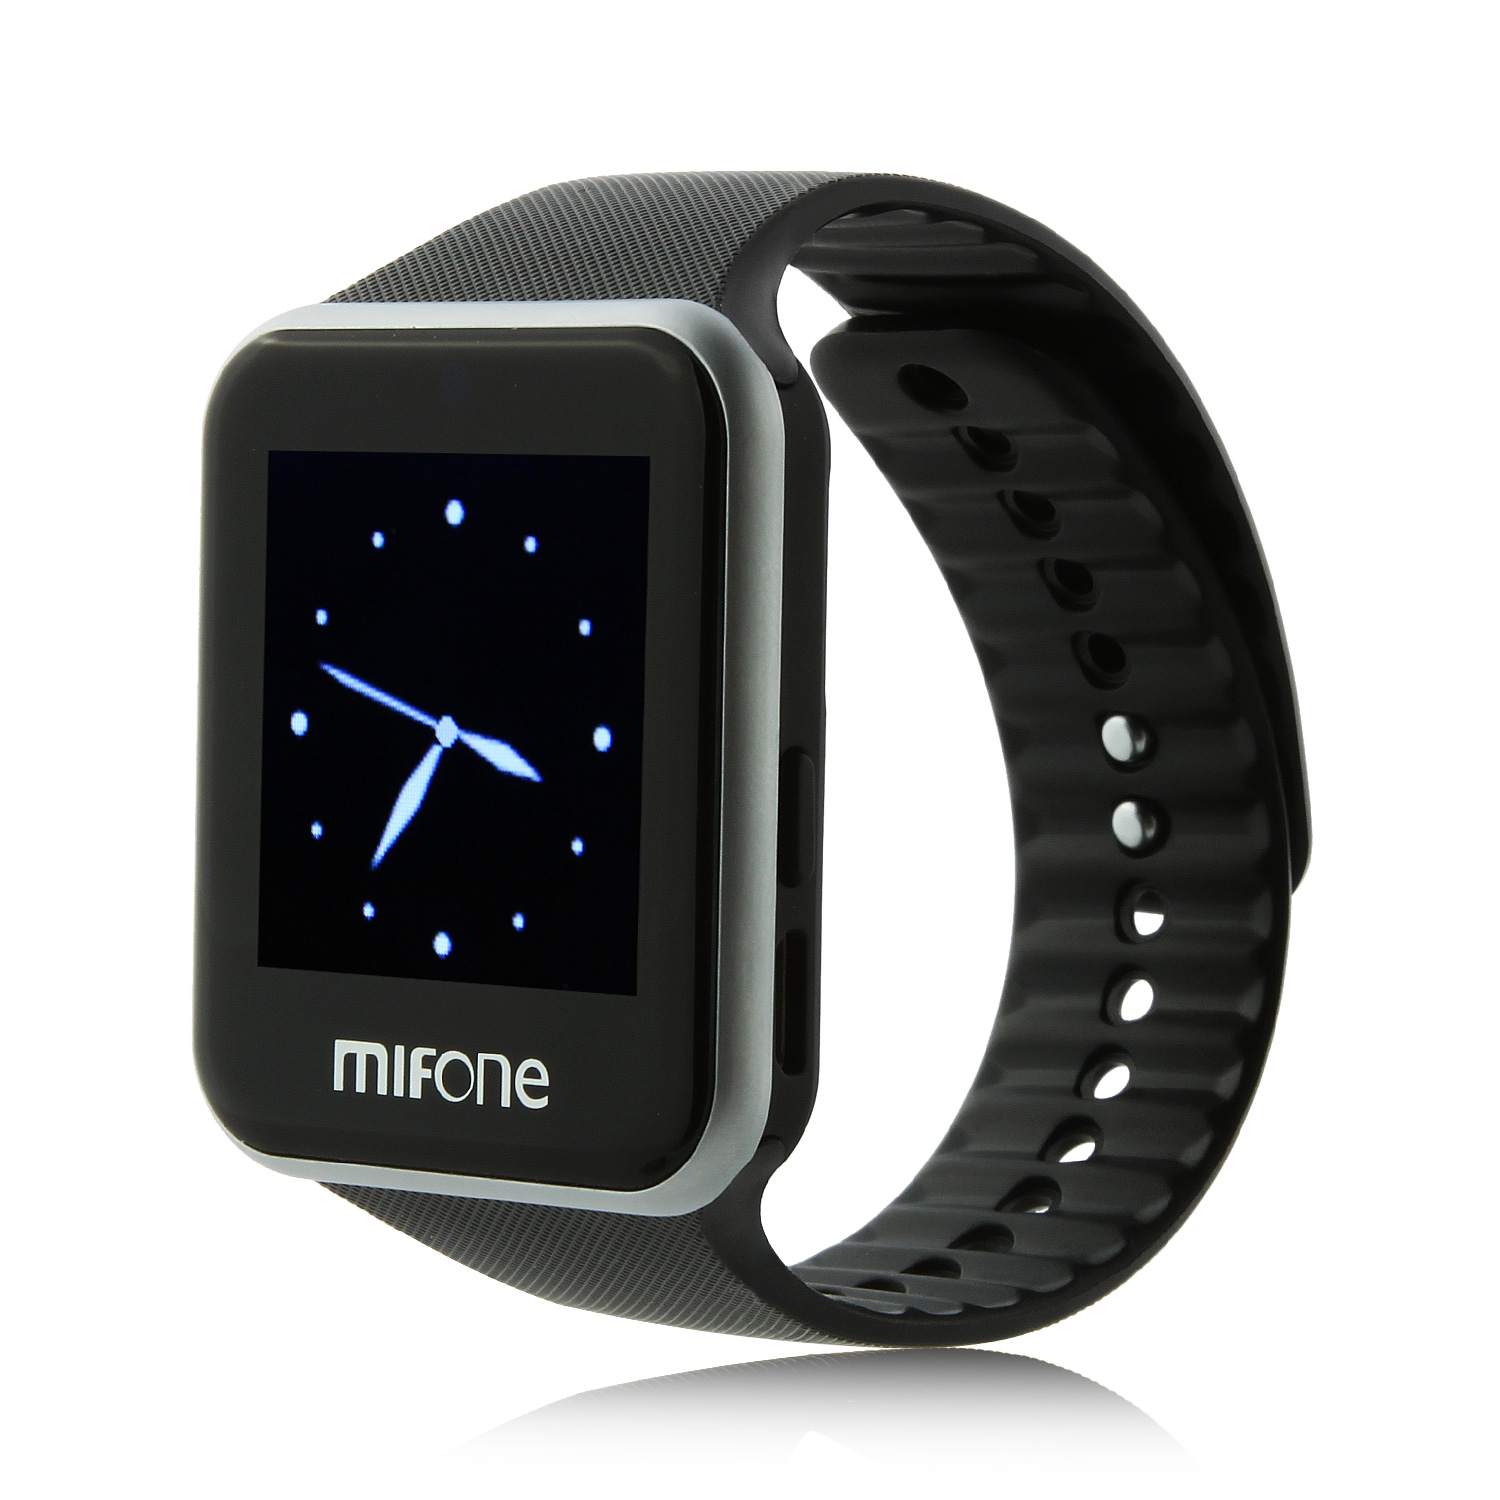 "MIFone W15 2.5D Sapphire Glass Smart Bluetooth Watch 1.5"" Screen TPSiV Safe Strap Black"